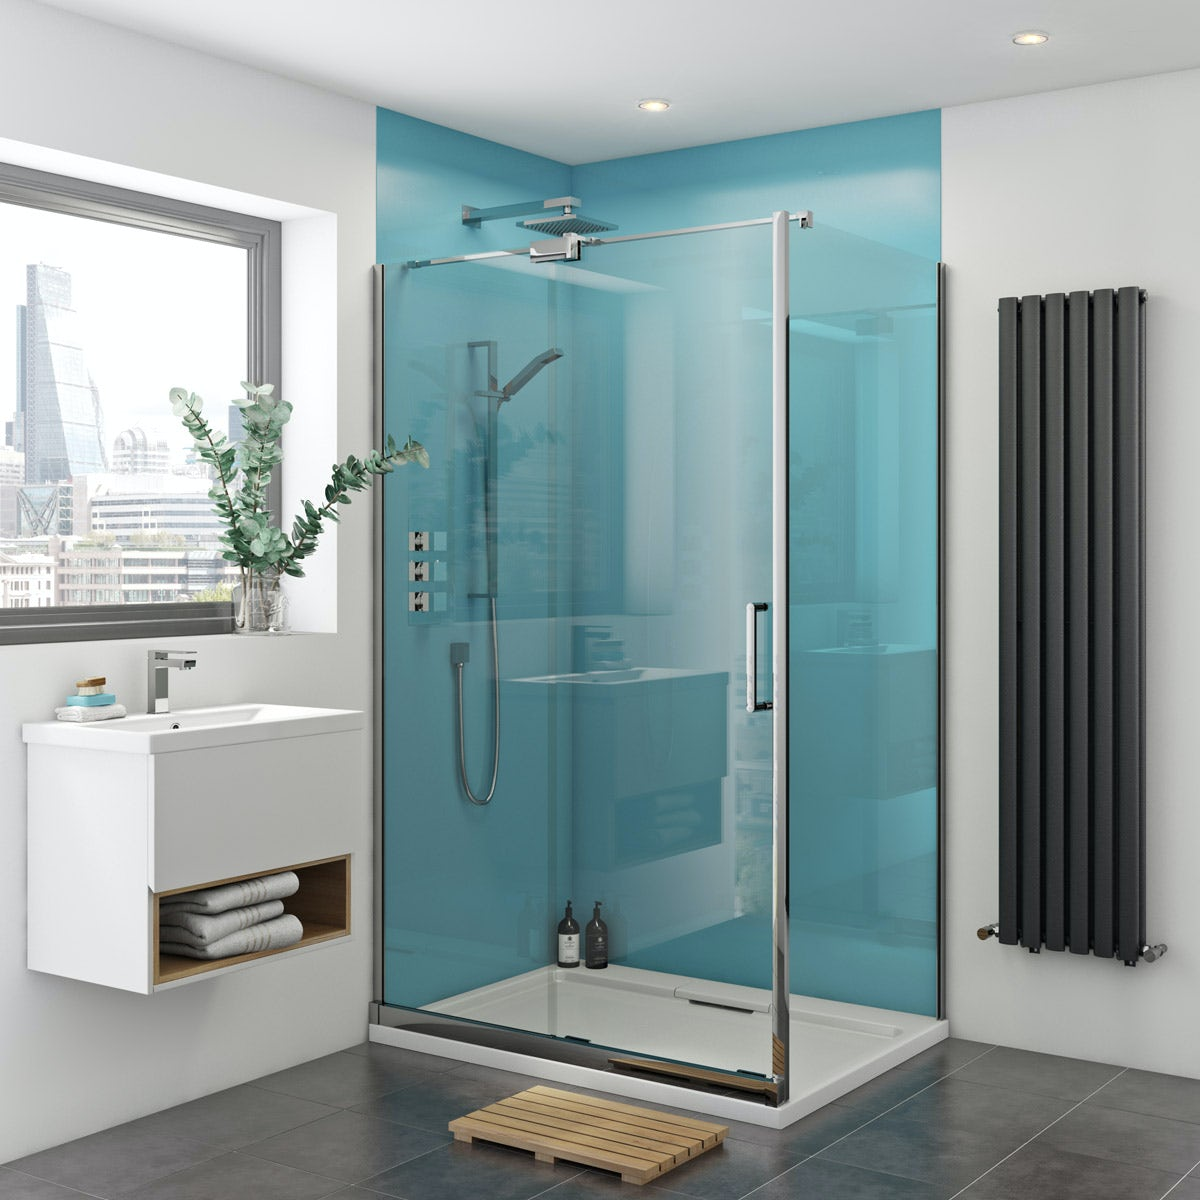 Zenolite Plus Water Acrylic Shower Wall Panel 2440 X 1000